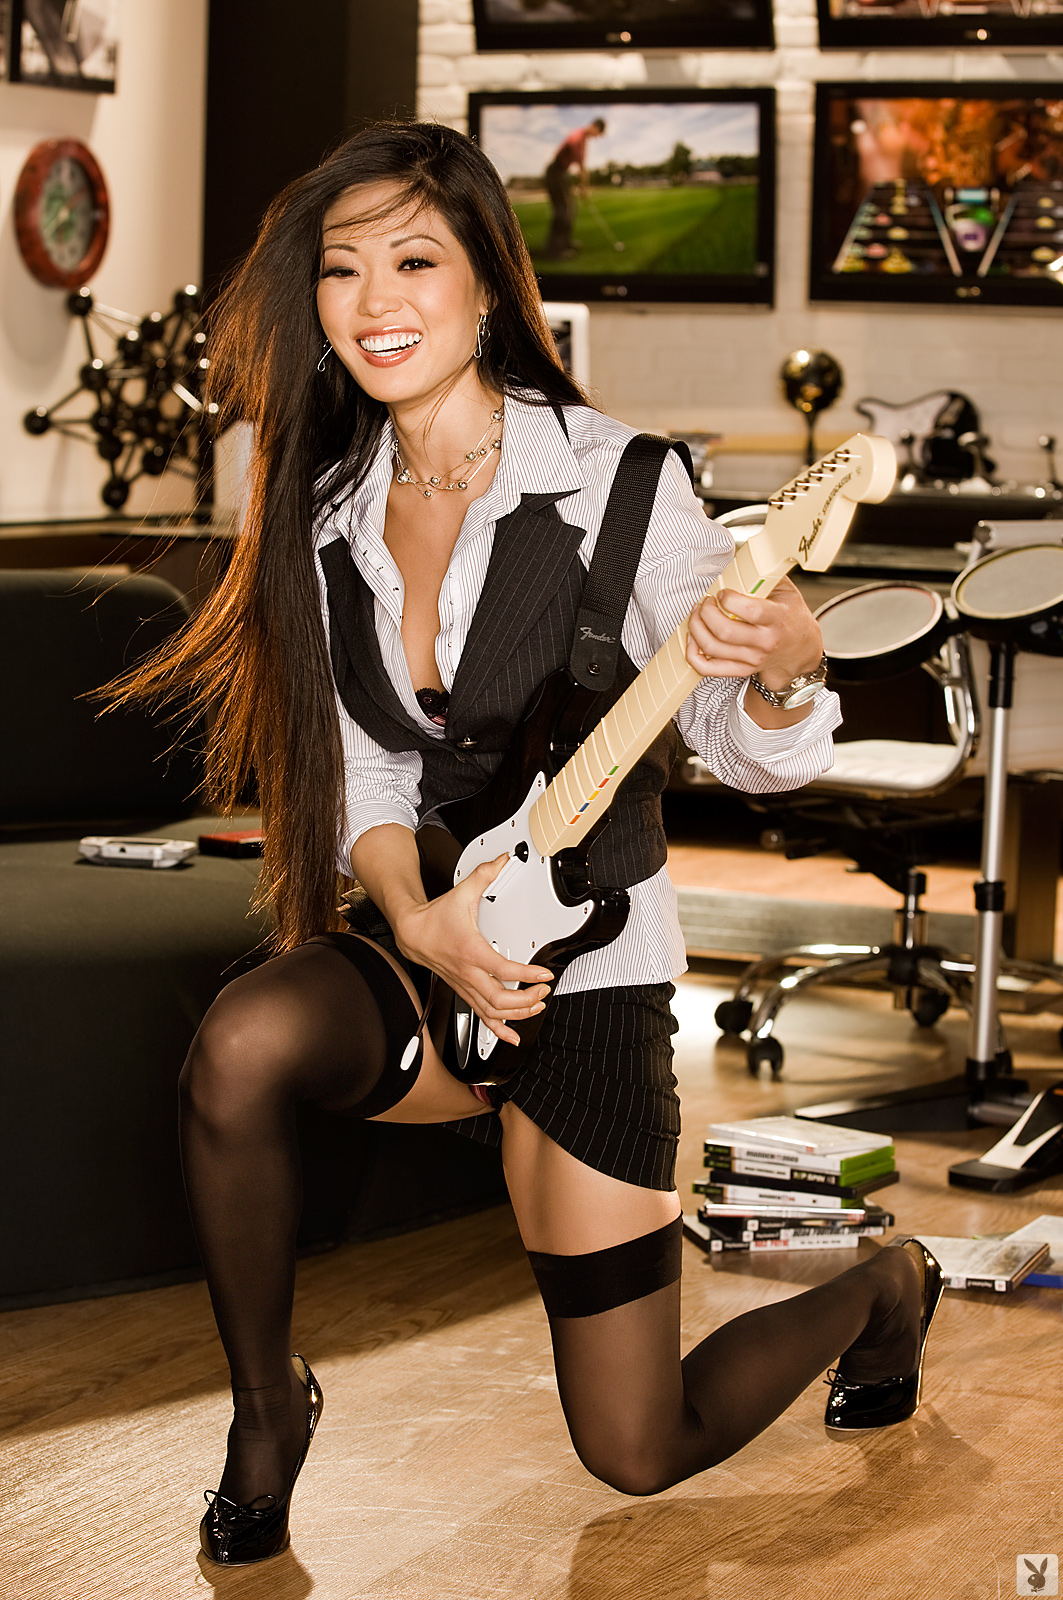 grace-kim-guitar-stockings-naked-asian-playboy-05